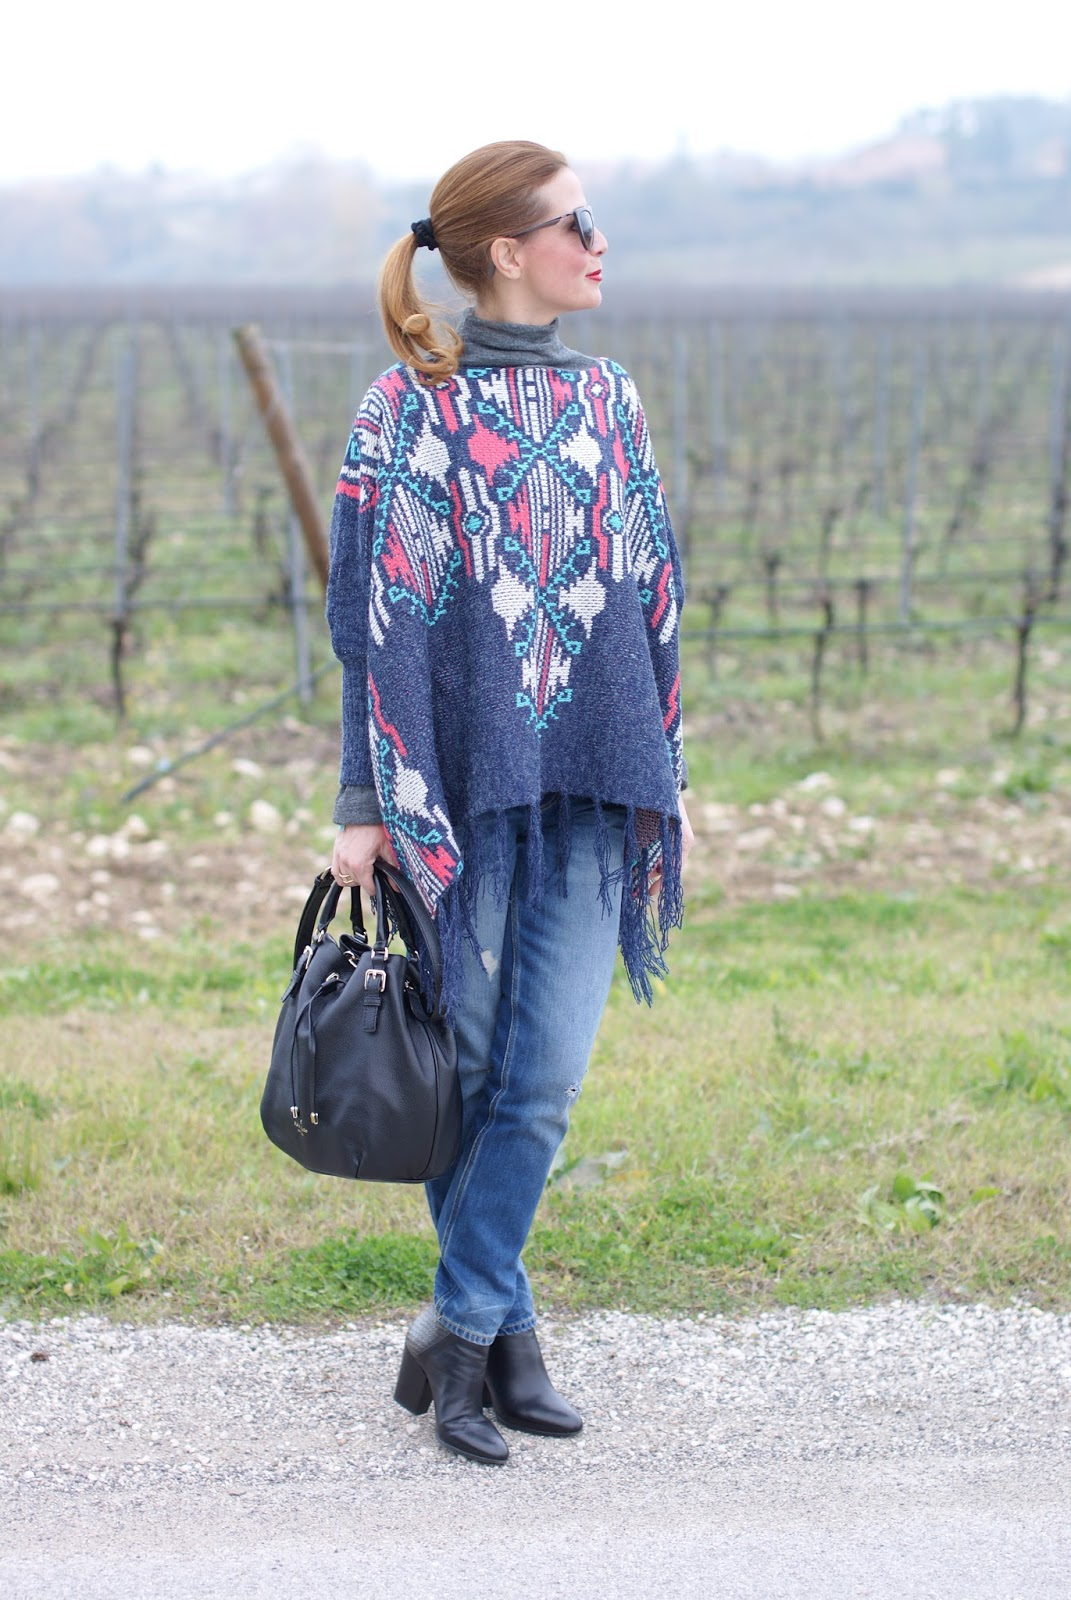 LucLuc Fringed aztec cape and poncho for a western inspired outfit on Fashion and Cookies fashion blog, fashion blogger style